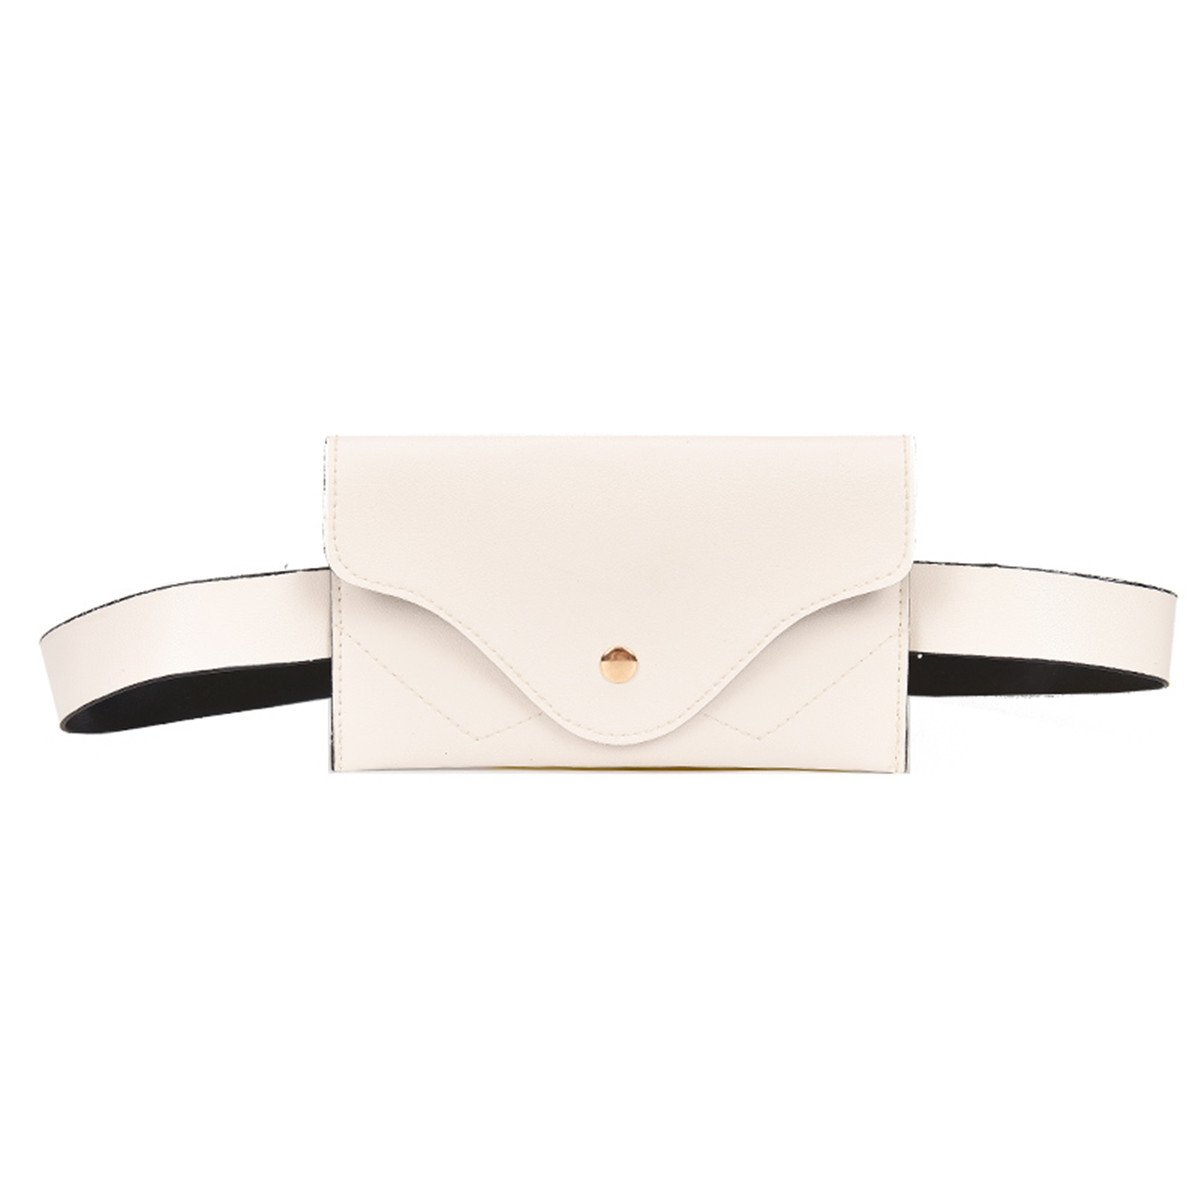 ECYC Women Fashion Waist Bag Simple Envelope Soft PU Leather Fanny Pack, White